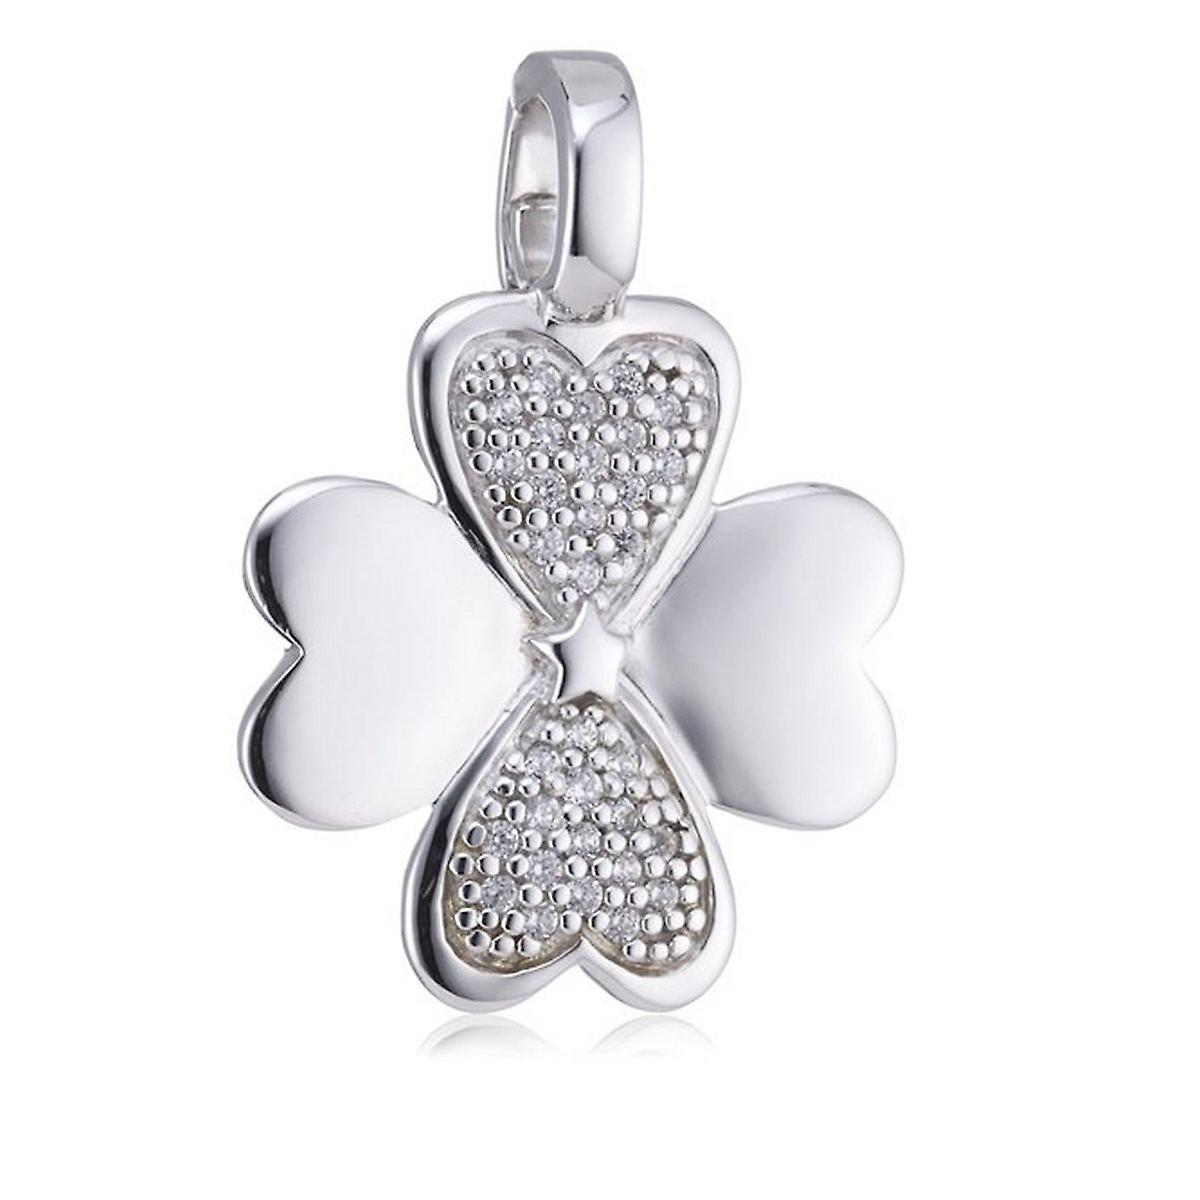 s.Oliver jewel ladies pendant charm silver four-leaf clover SO598/01 - 378888